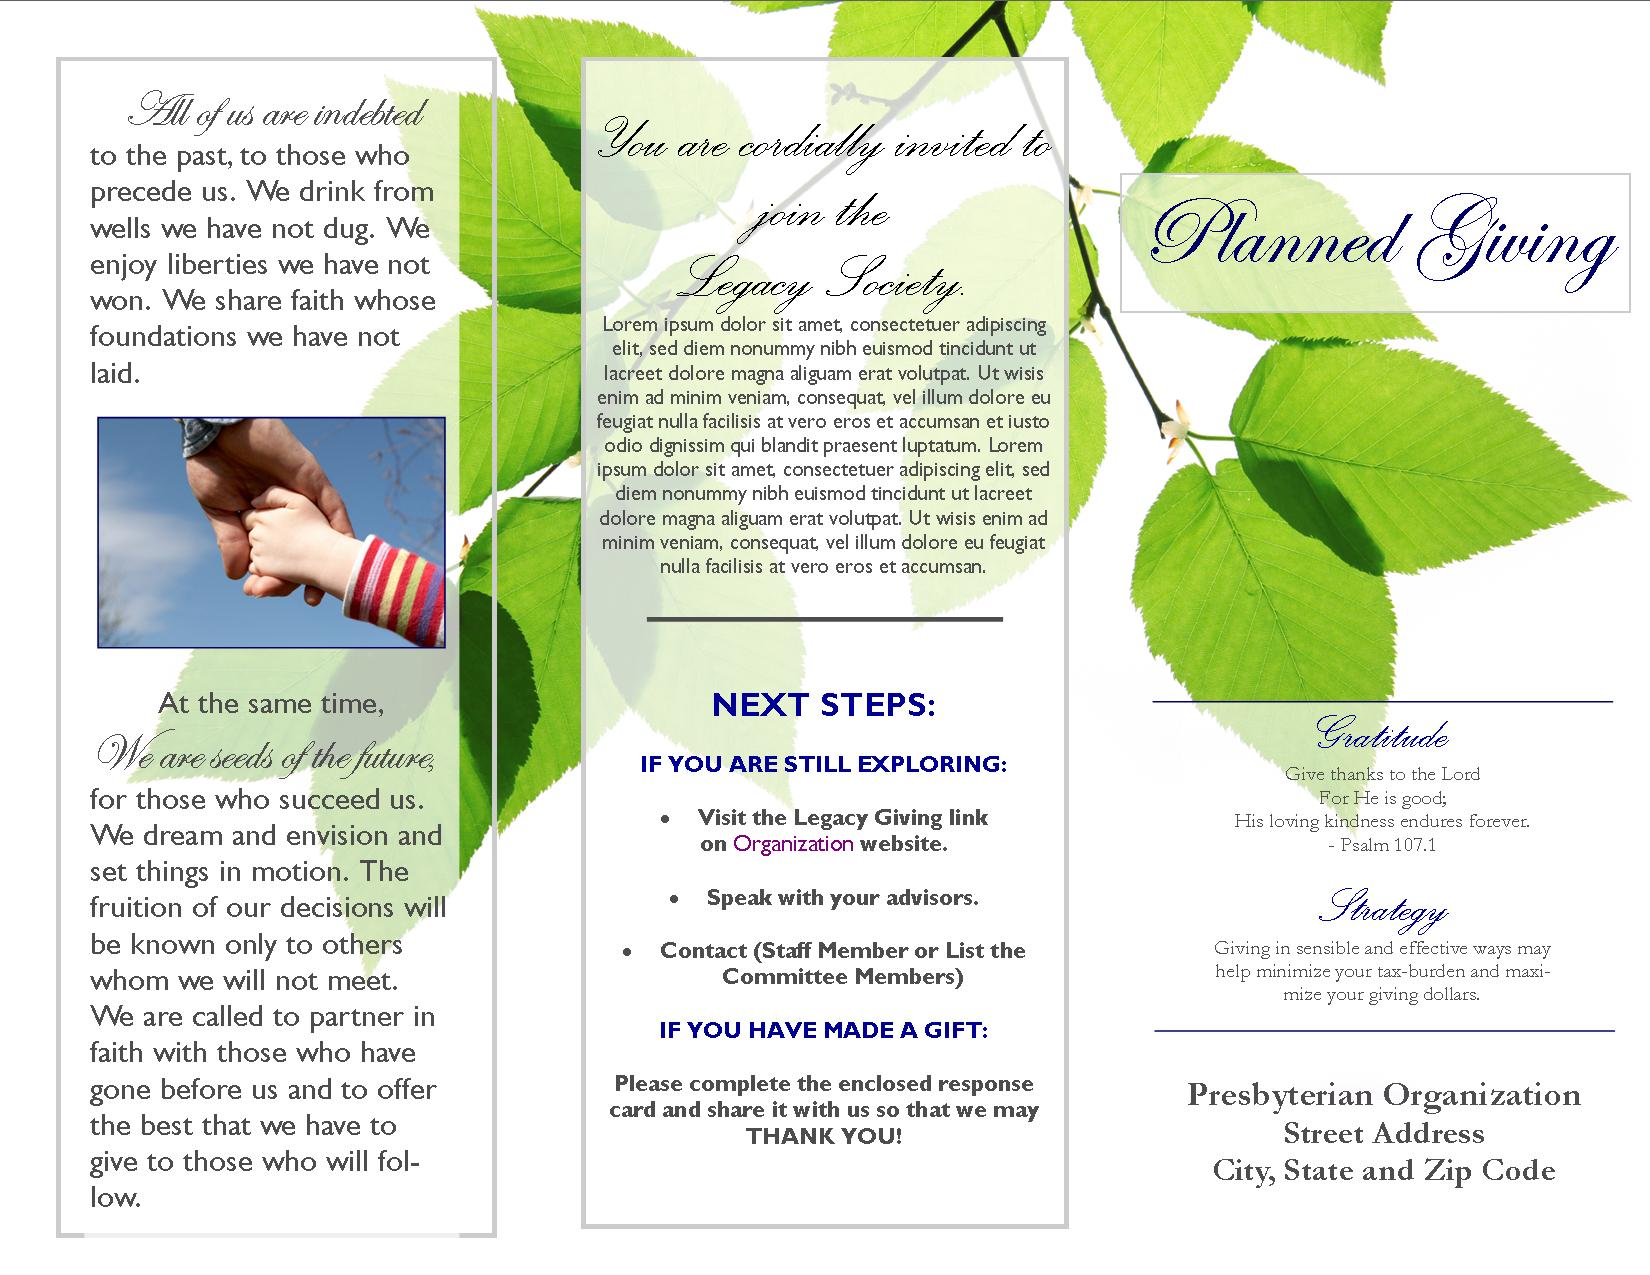 planned giving and endowment brochure general template